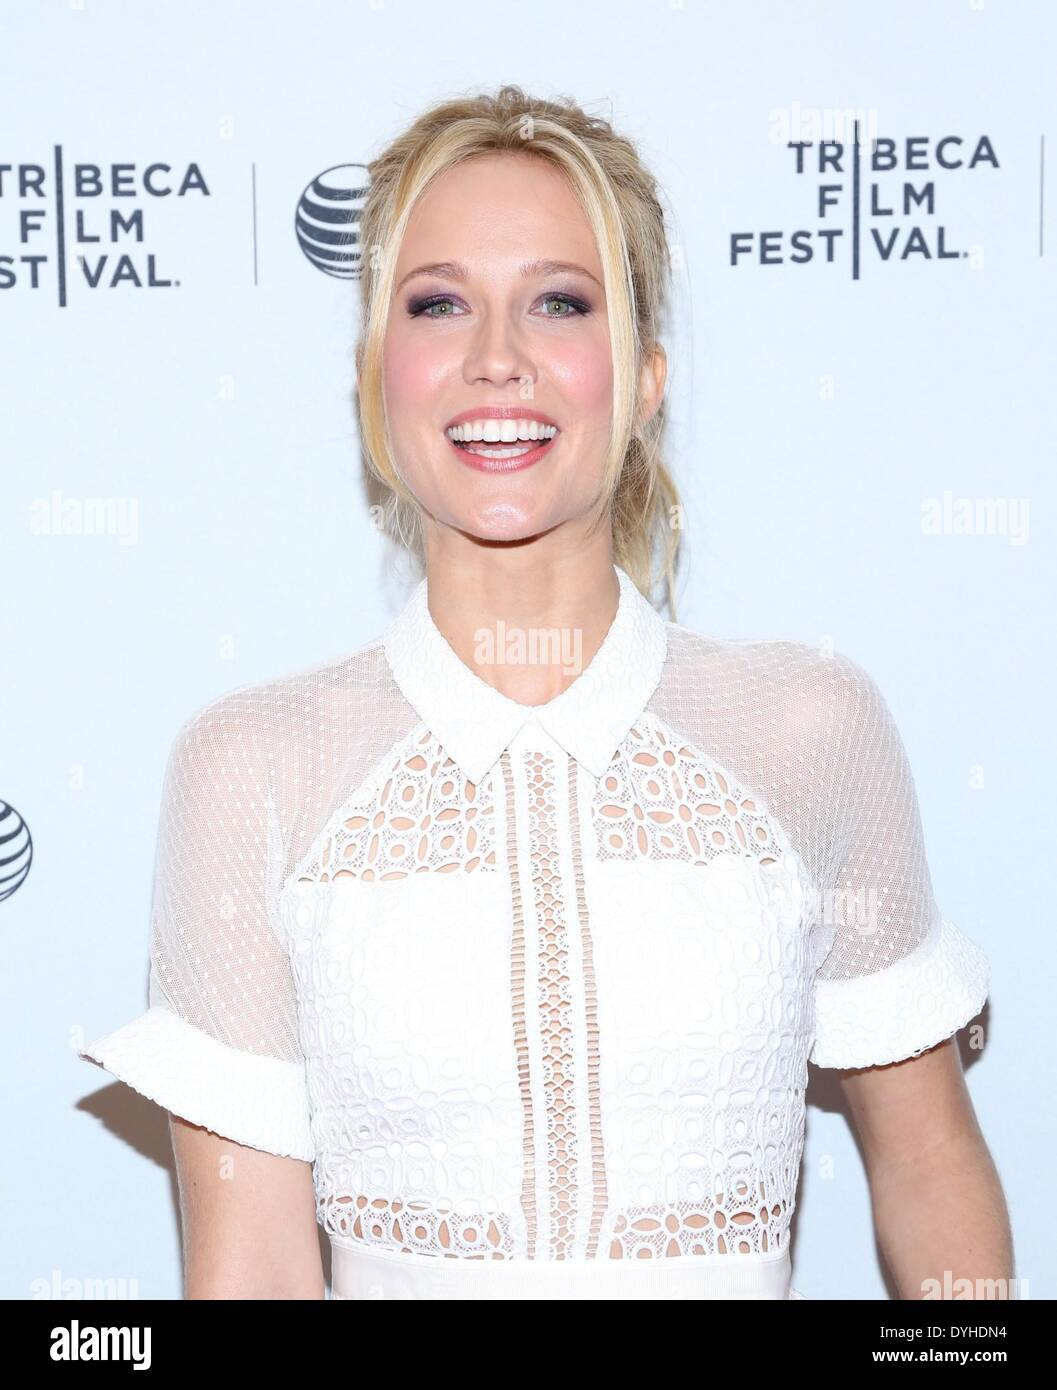 New York, NY, USA. 17th Apr, 2014. Anna Camp at arrivals for 2014 Tribeca Film Festival - GOODBYE TO ALL THAT Premiere, SVA Theatre, New York, NY April 17, 2014. Credit:  Andres Otero/Everett Collection/Alamy Live News - Stock Image